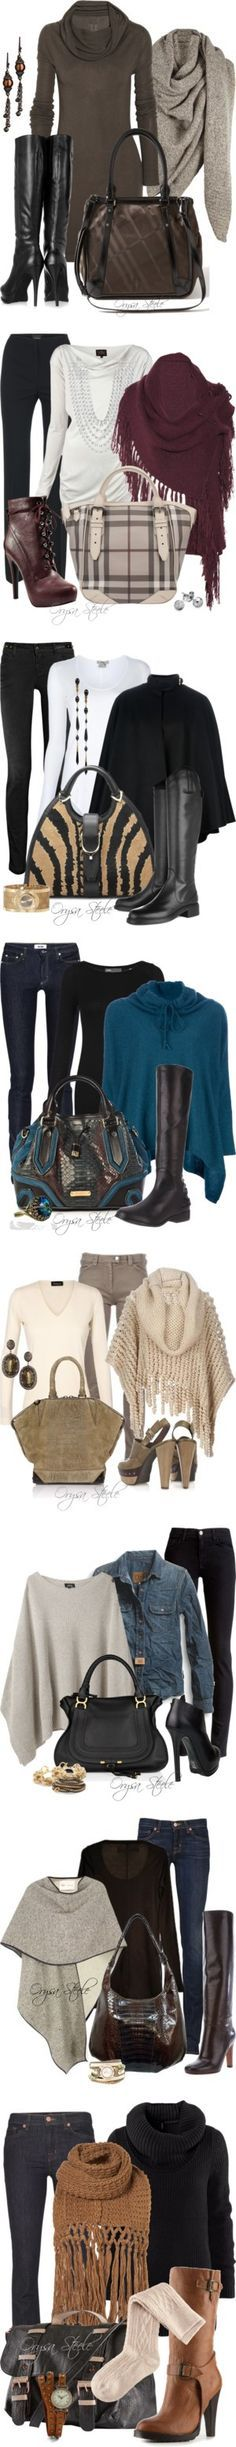 """""""A Shawl for Fall"""" by orysa on Polyvore"""